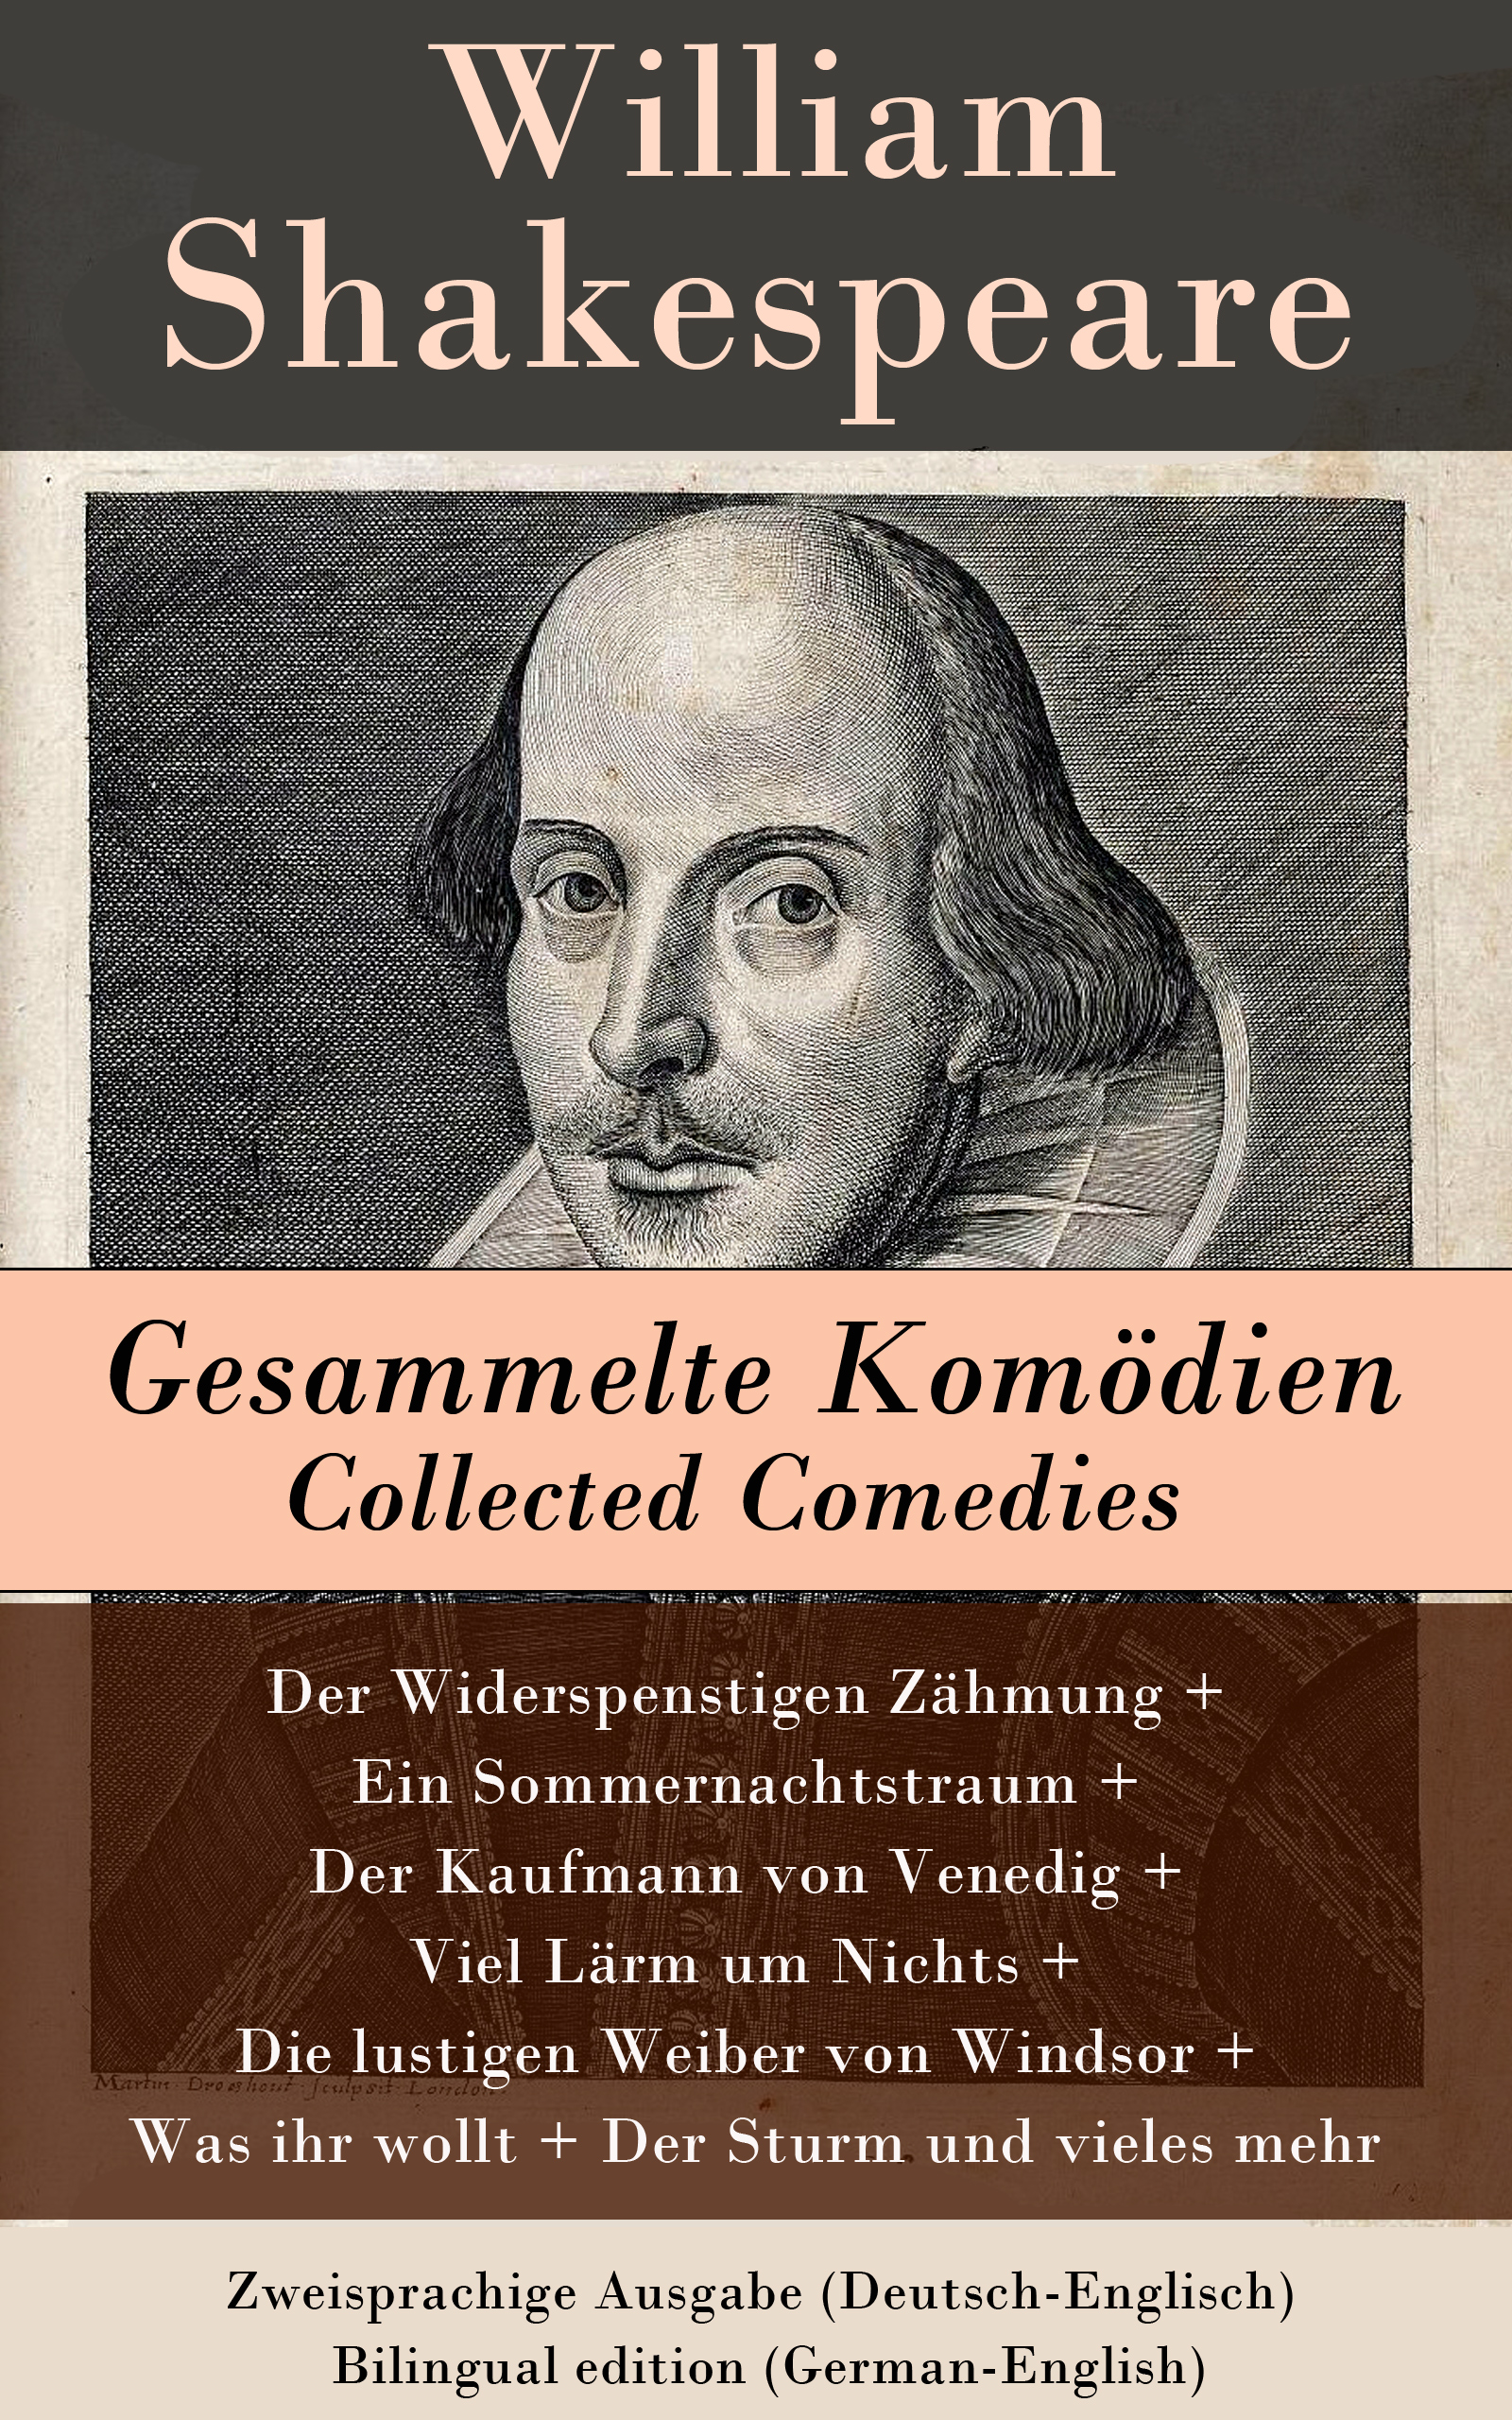 gesammelte komodien collected comedies zweisprachige ausgabe deutsch englisch bilingual edition german english